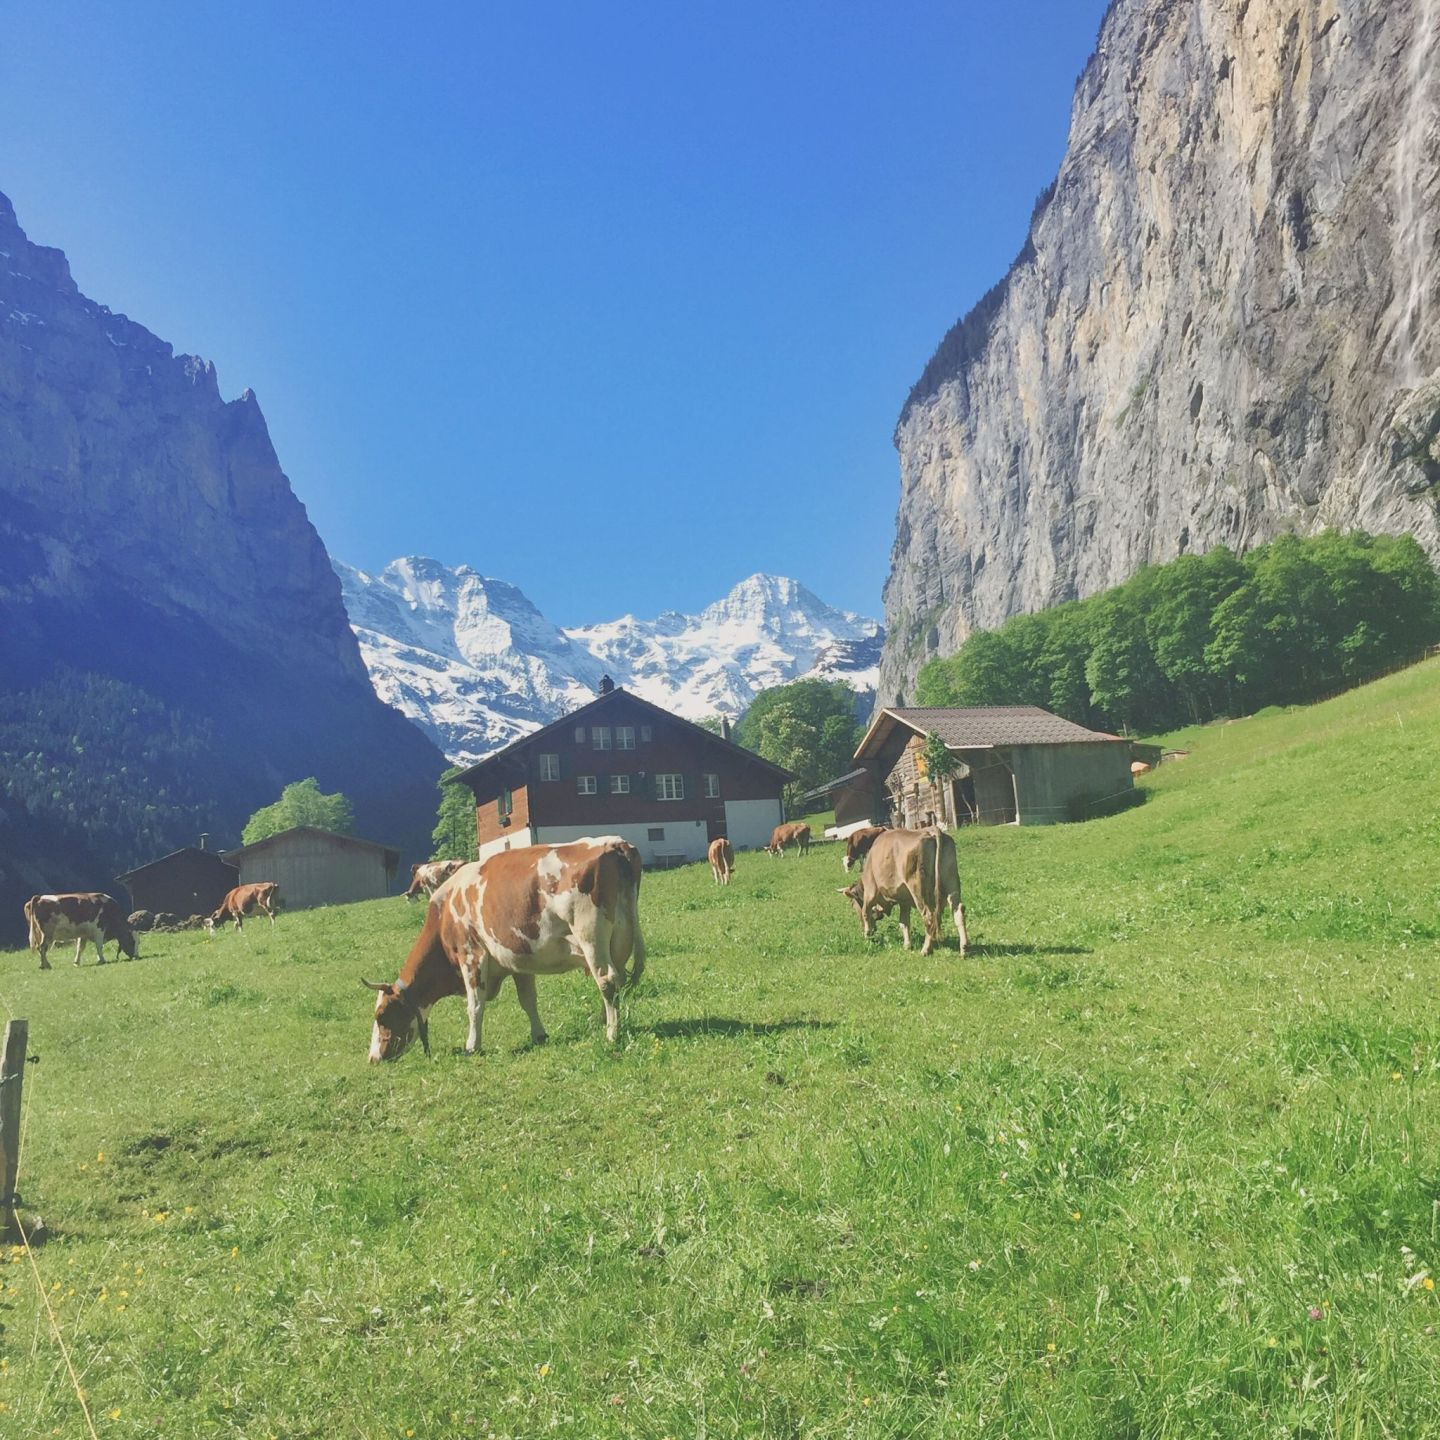 Cows grazing in a meadow with swiss chalet and mountains in the background